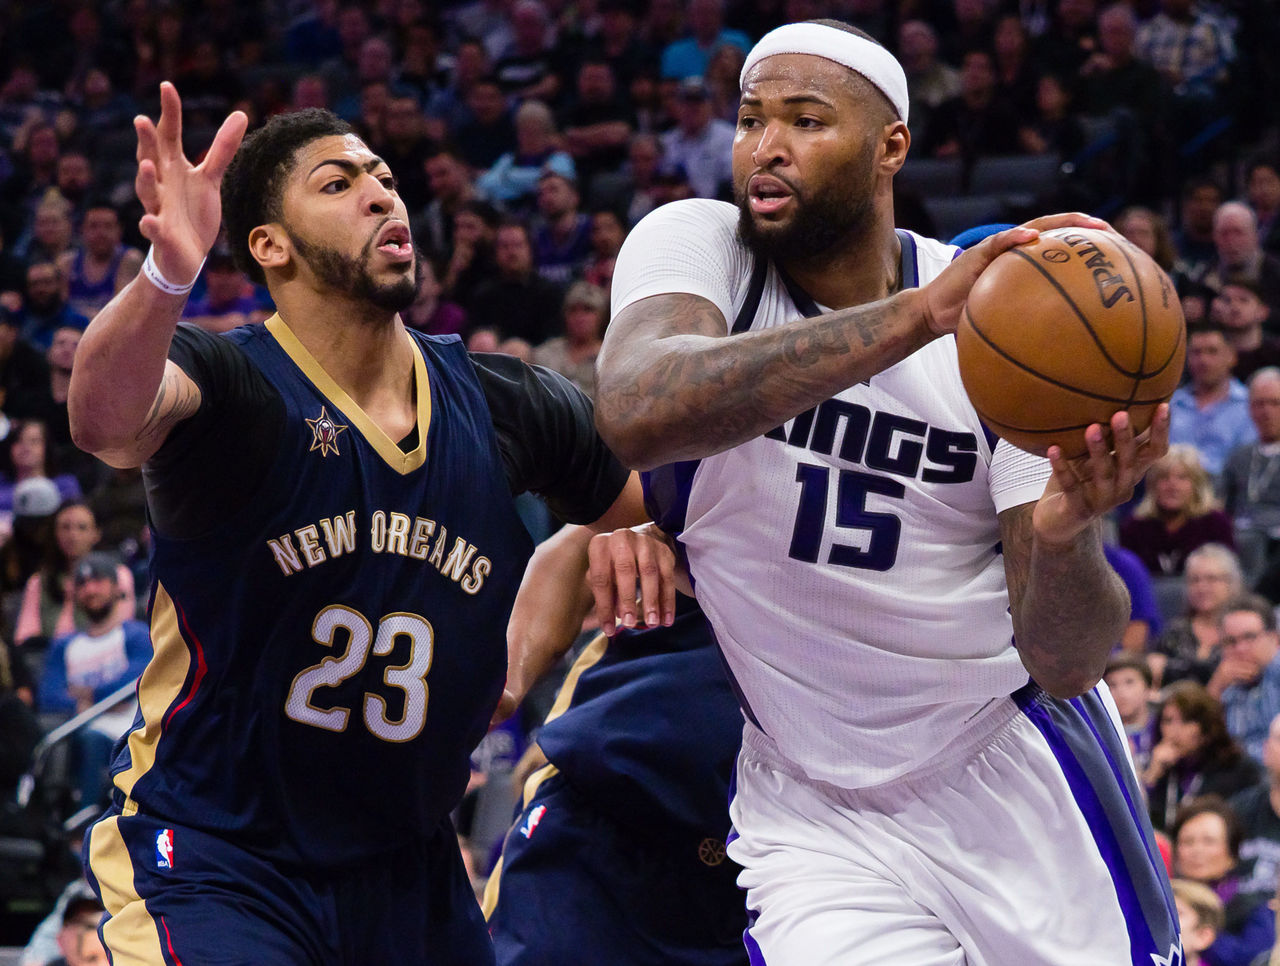 Cropped 2017 02 13t045547z 183396747 nocid rtrmadp 3 nba new orleans pelicans at sacramento kings